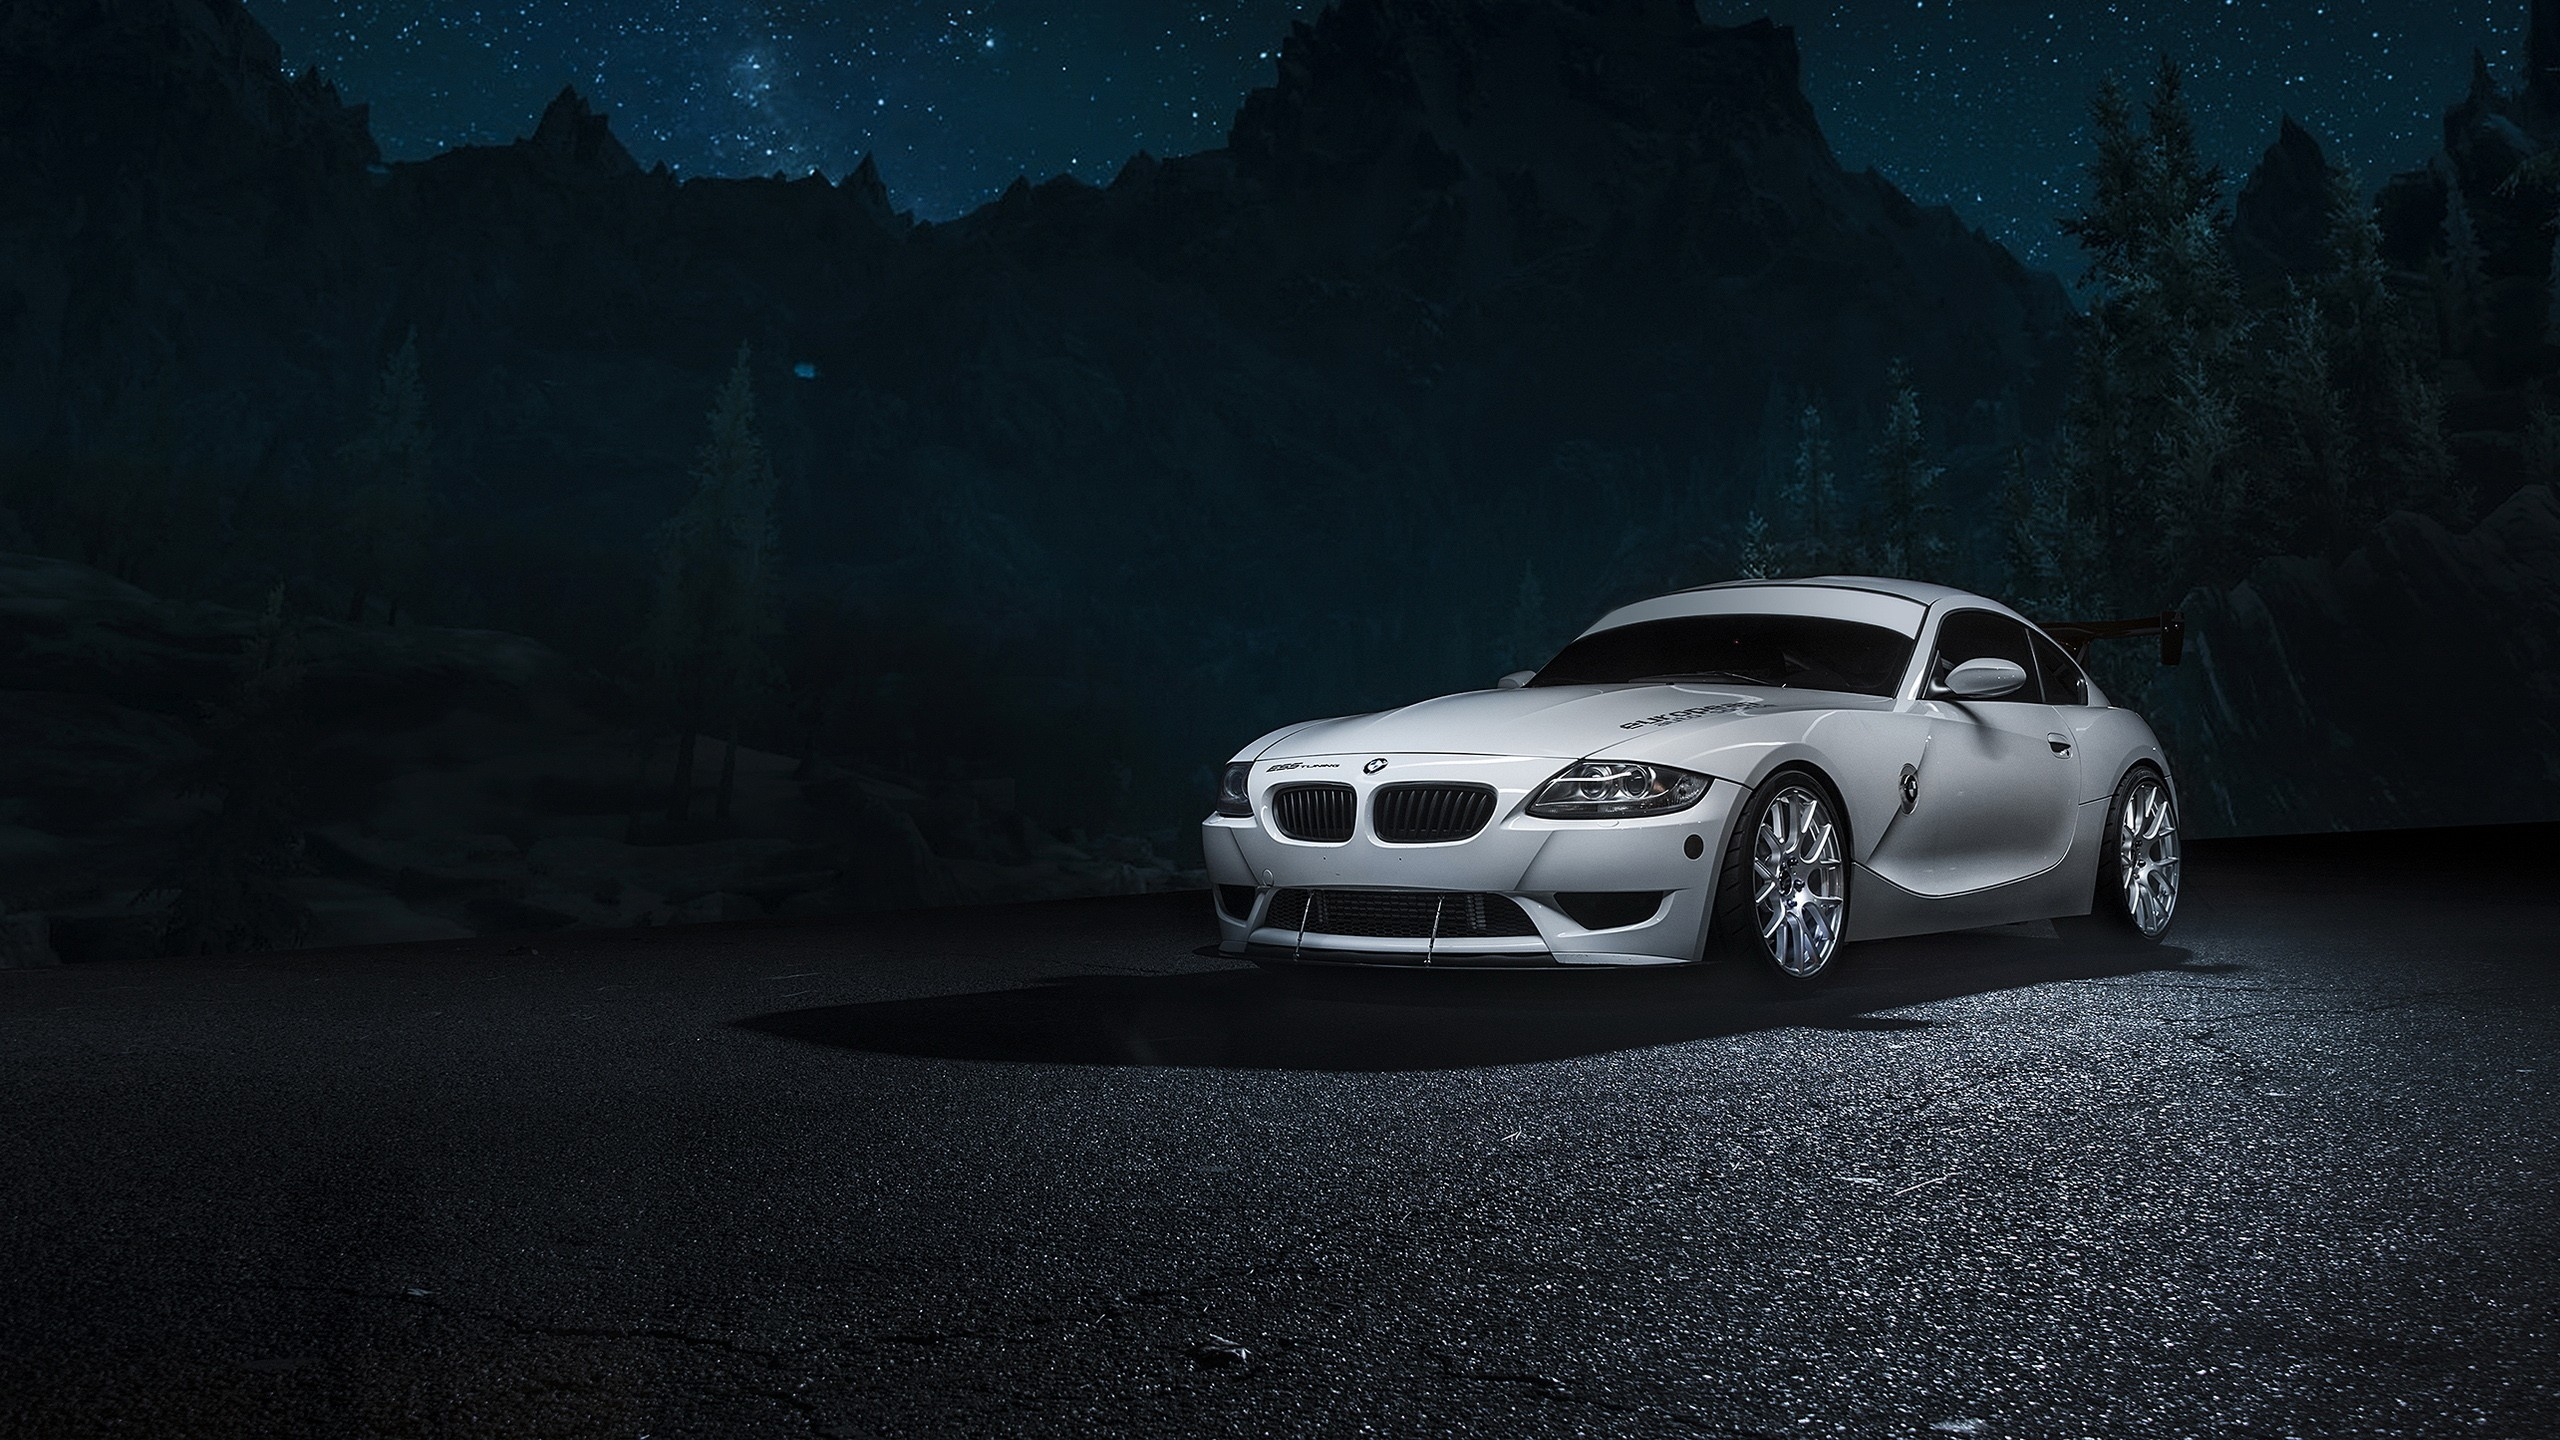 Bmw z4 wallpaper hd car wallpapers id 6386 - Bmw cars wallpapers hd free download ...